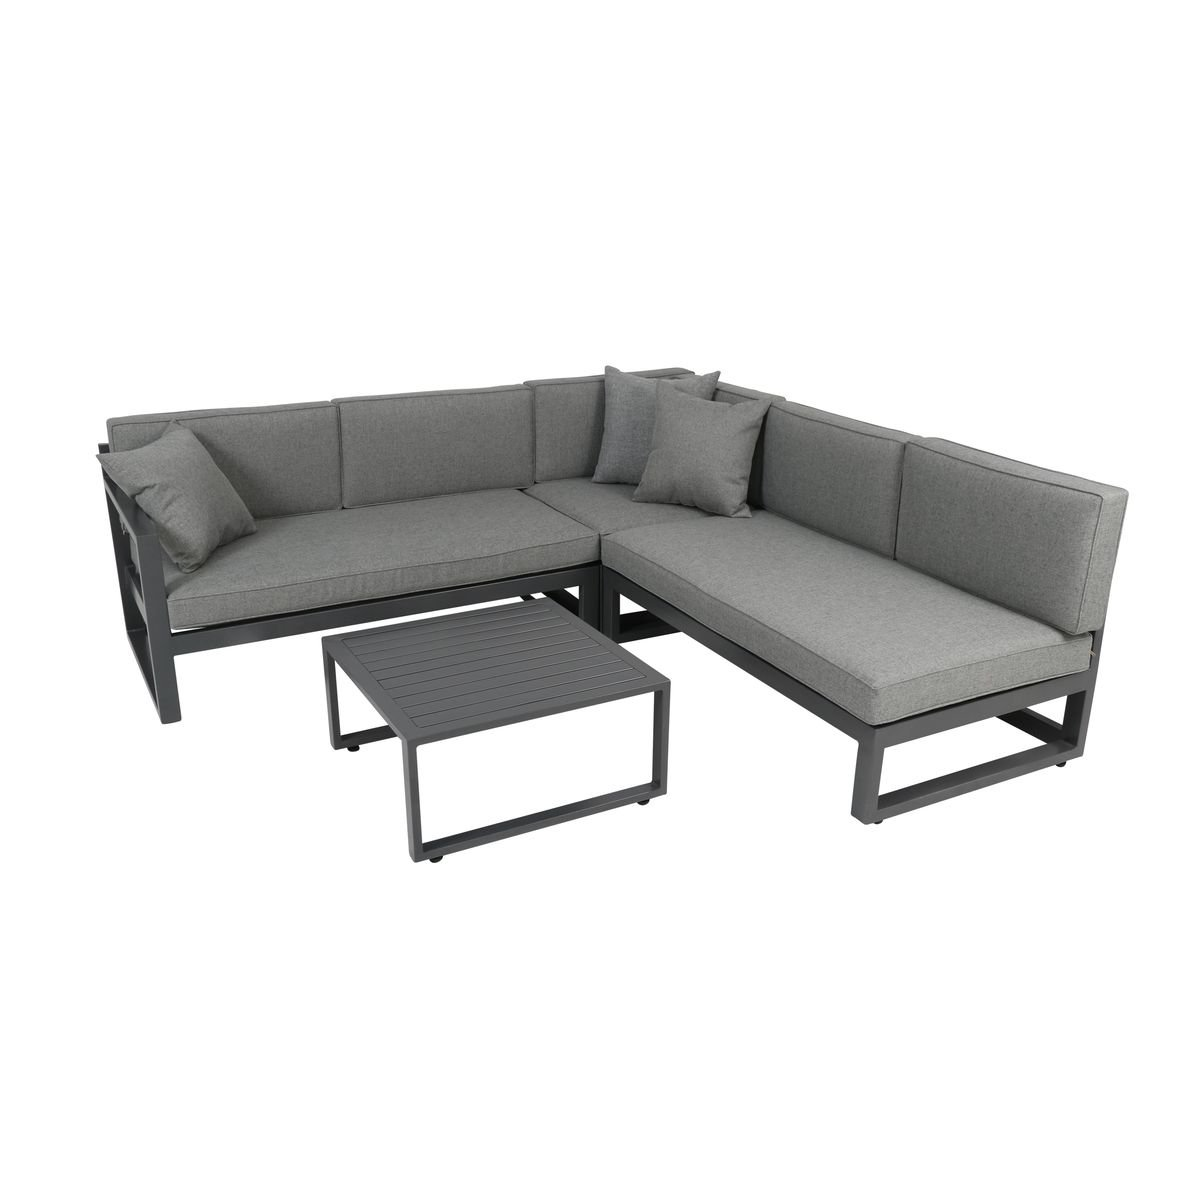 greemotion gartenm bel set alu costa rica gartenlounge aus aluminium mit auflagen in grau 3. Black Bedroom Furniture Sets. Home Design Ideas